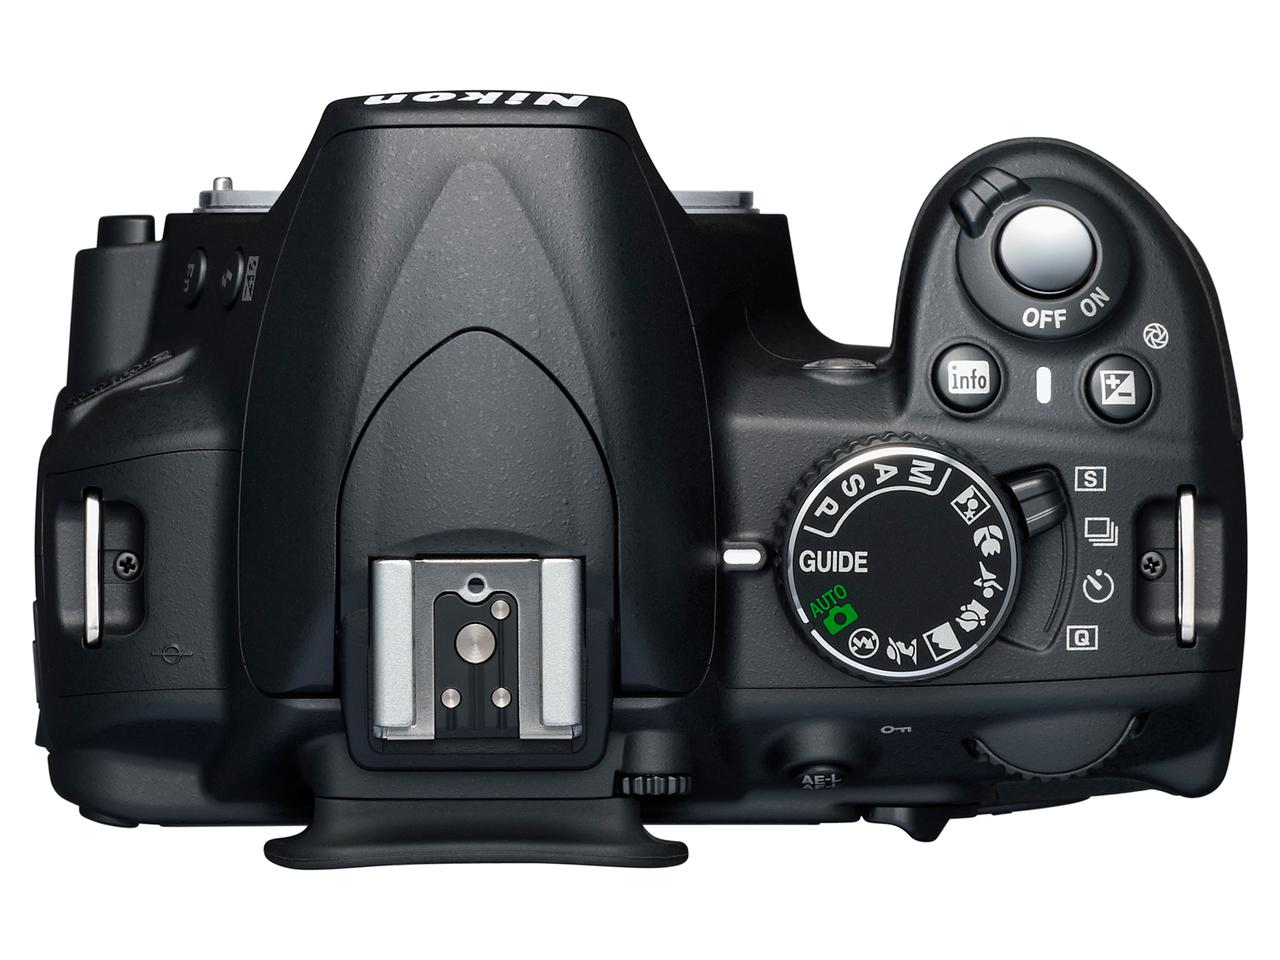 In addition to the settings dial, the D3100 features a selection switch to activate the camera's quiet mode